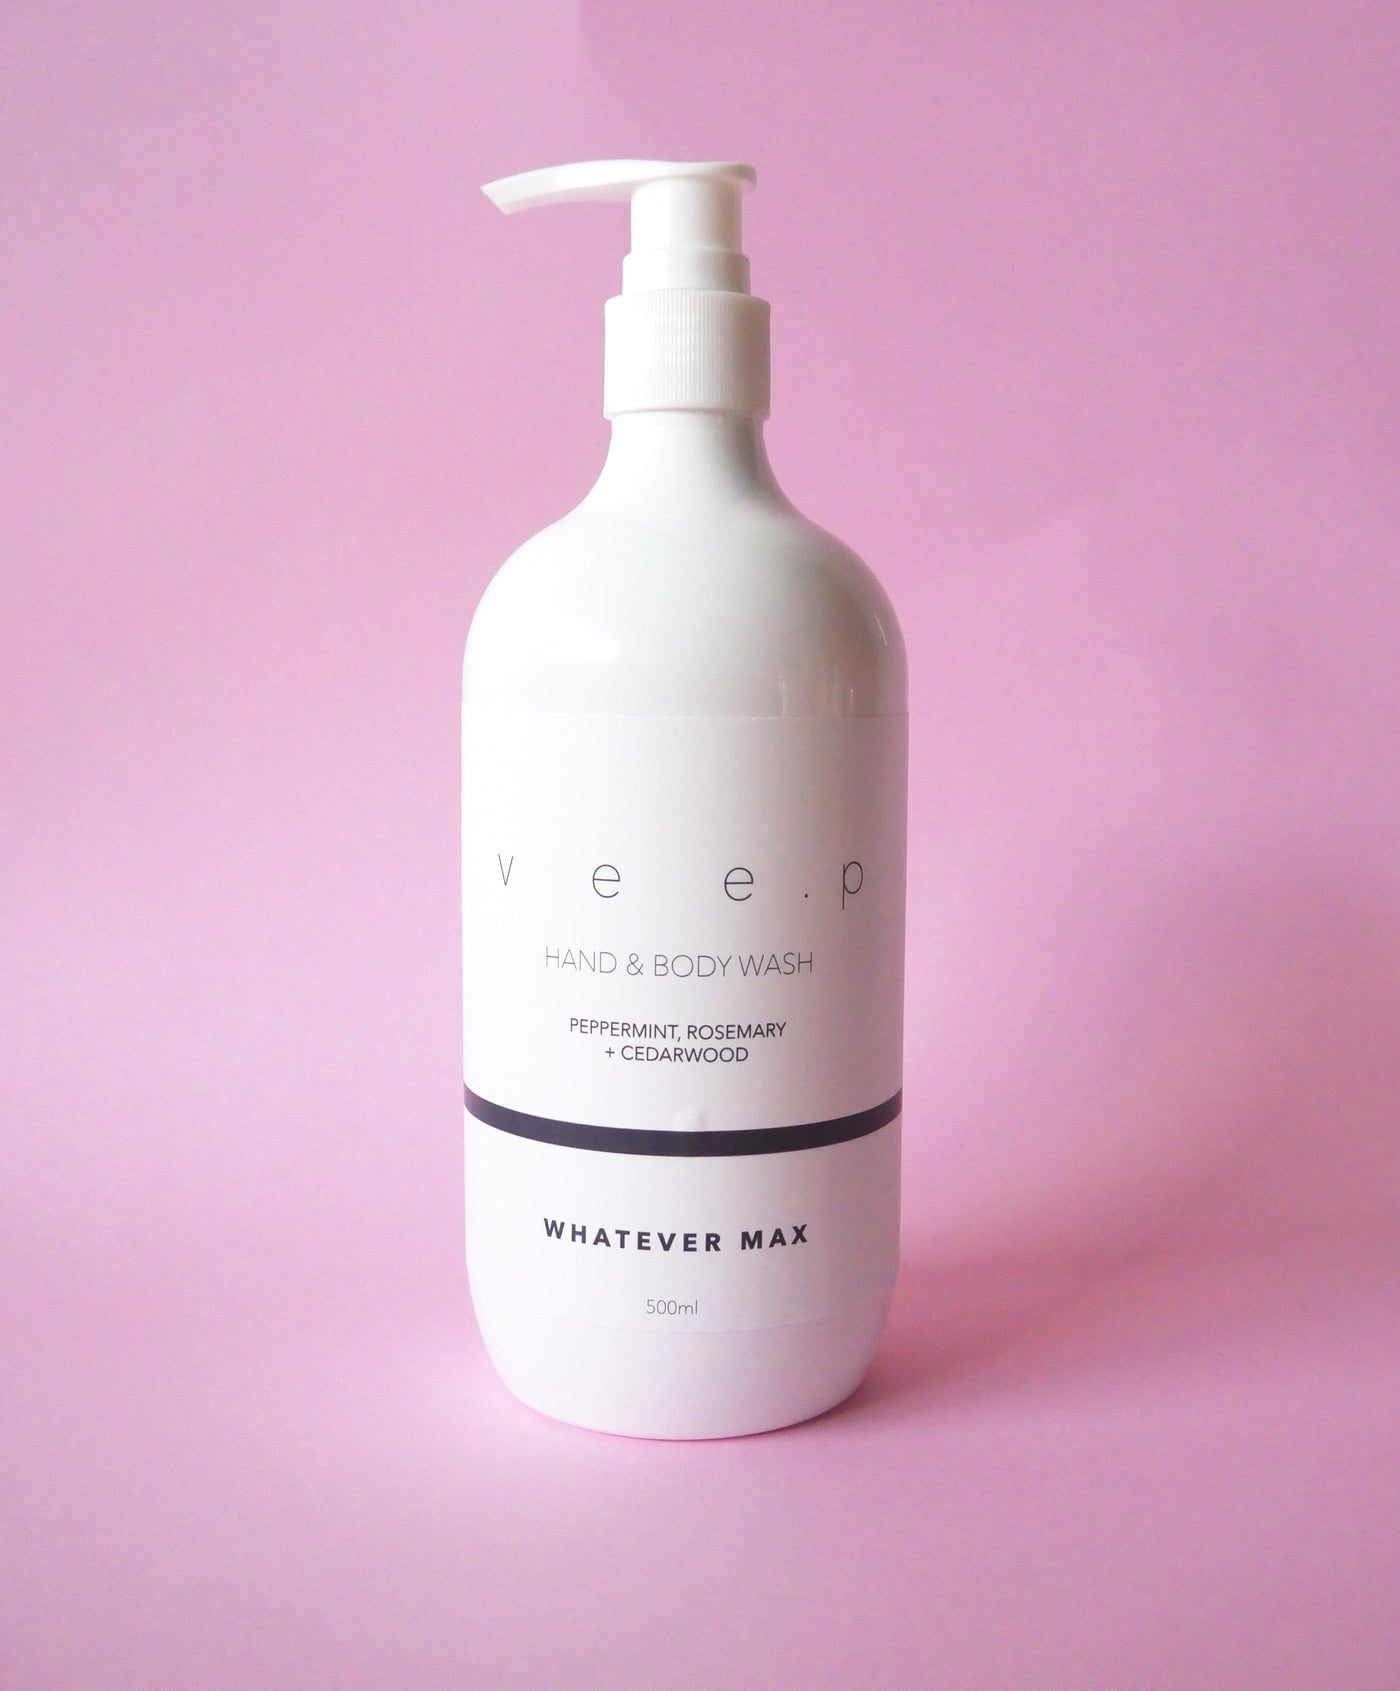 WHATEVER MAX BODY WASH - Peppermint, rosemary & cedarwood